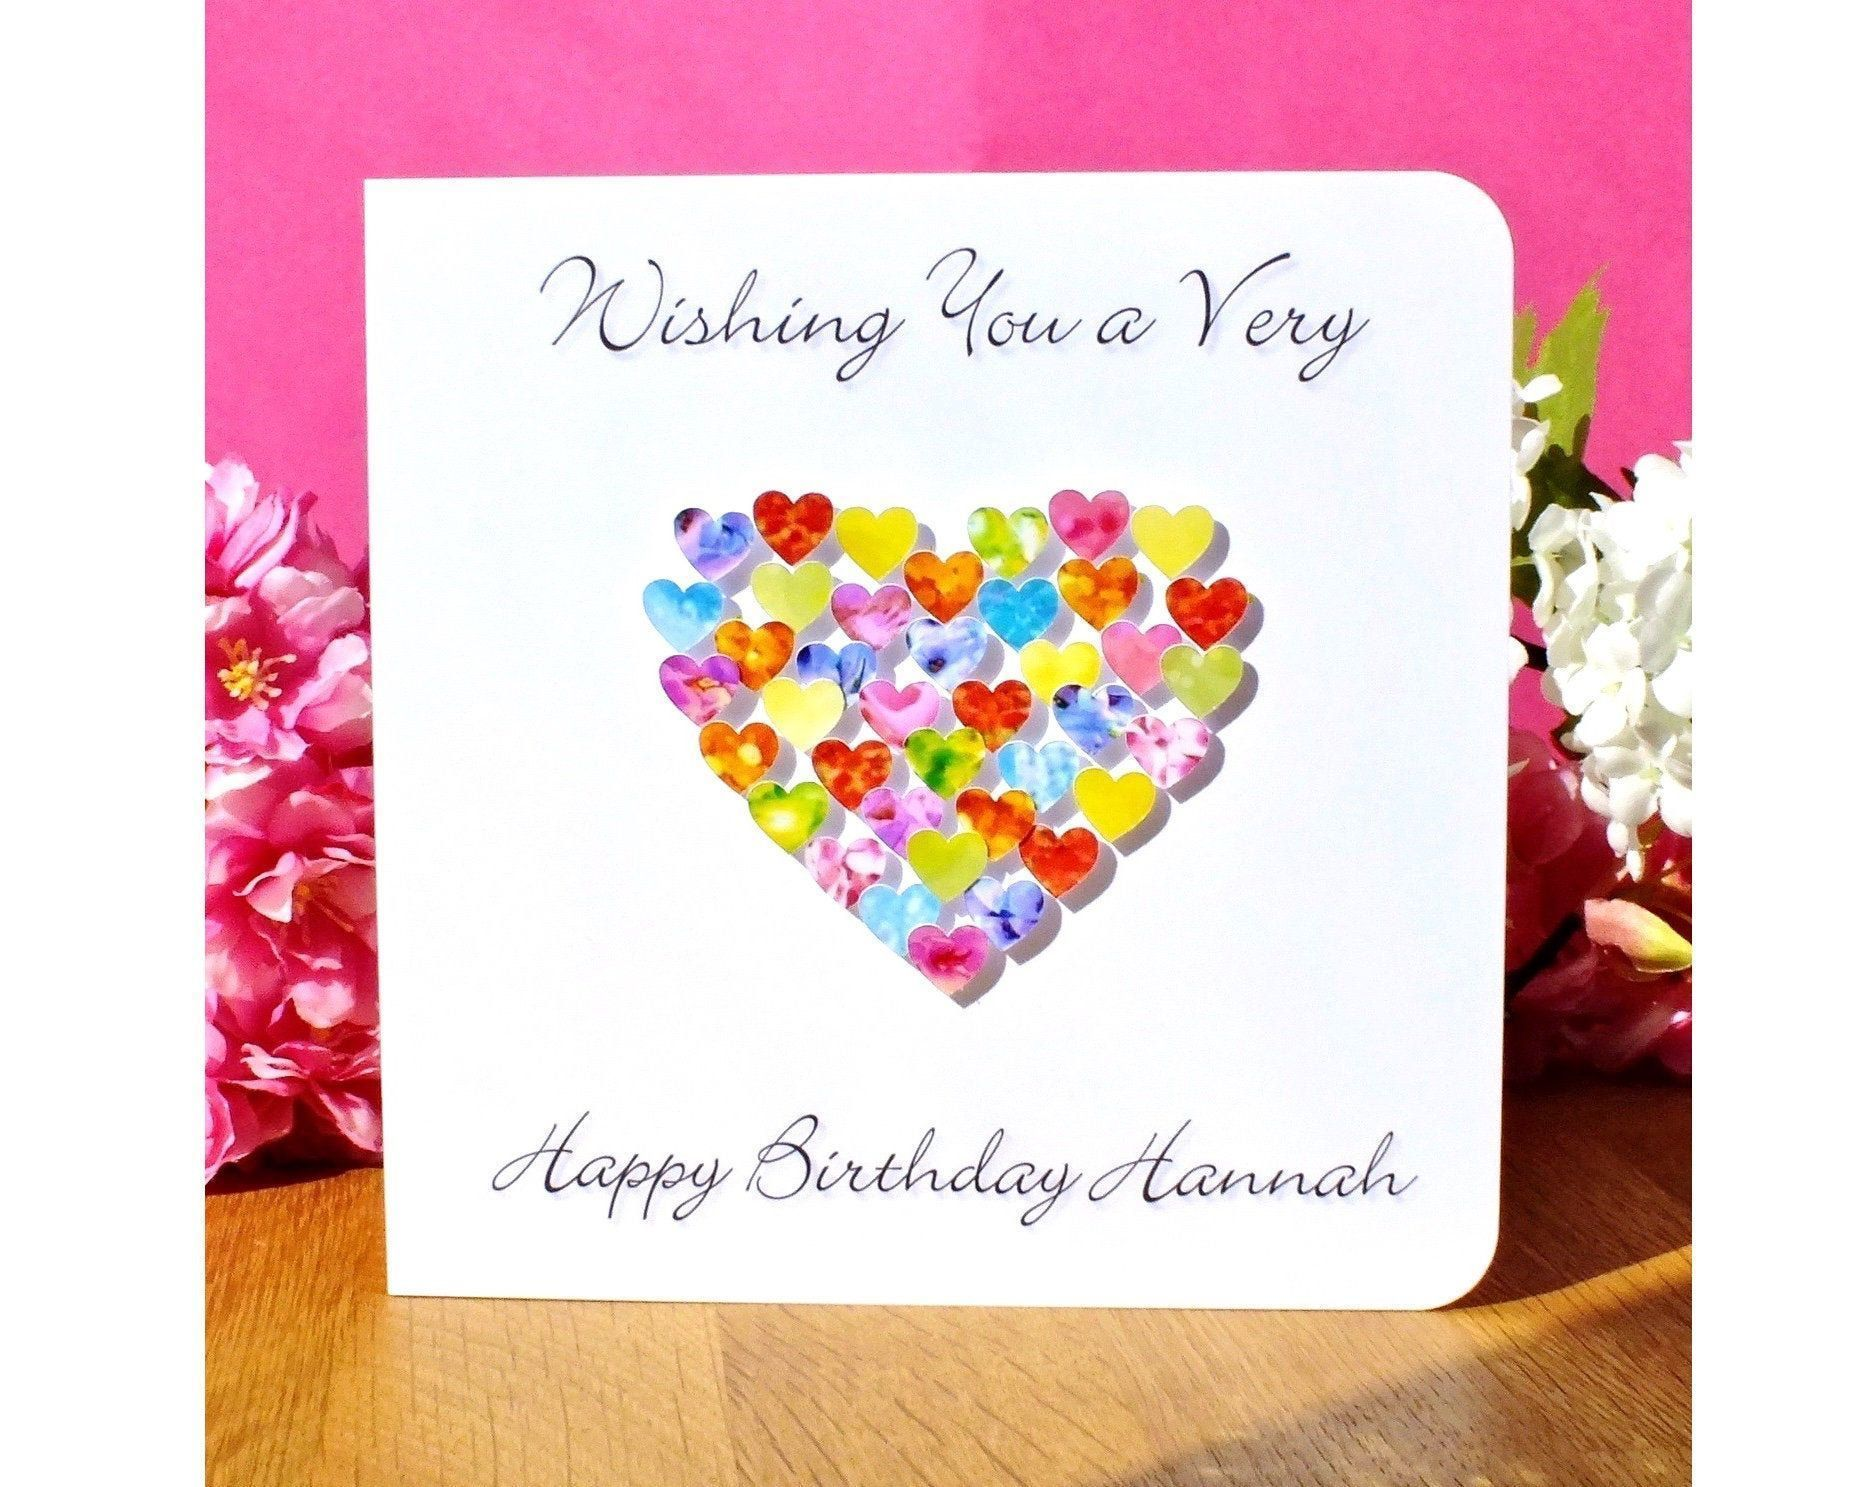 Personalised Birthday Card - Colourful Custom Birthday Card with Name or Relation of your choice, Sister, Friend, Daughter, Mum, etc #mumsetc Personalised Birthday Card - Colourful Custom Birthday Card with Name or Relation of your choice, Sister, Friend, Daughter, Mum, etc. #mumsetc Personalised Birthday Card - Colourful Custom Birthday Card with Name or Relation of your choice, Sister, Friend, Daughter, Mum, etc #mumsetc Personalised Birthday Card - Colourful Custom Birthday Card with Name or #mumsetc